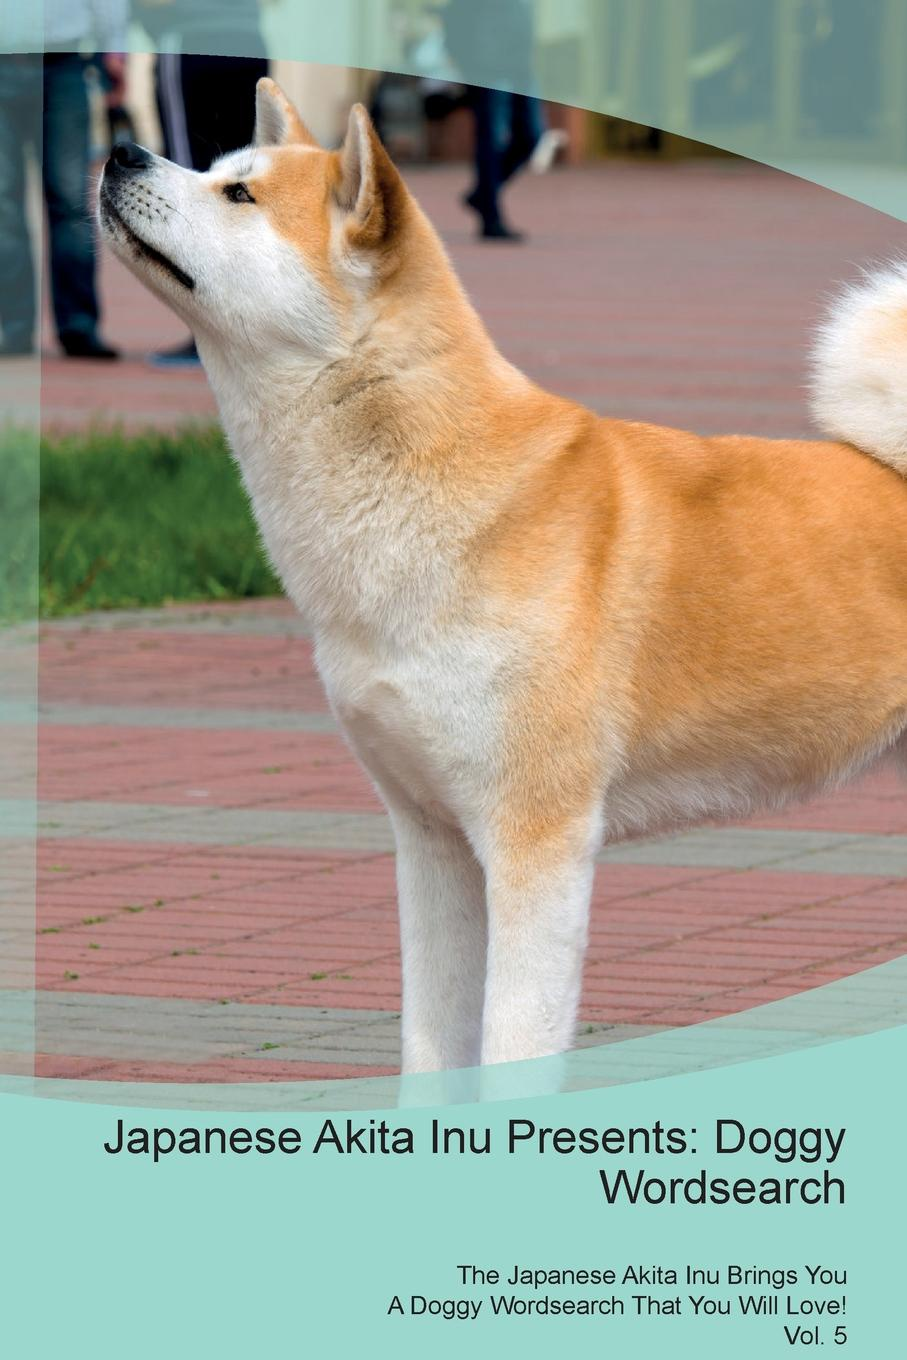 Doggy Puzzles Japanese Akita Inu Presents. Wordsearch The Brings You A That Will Love! Vol. 5